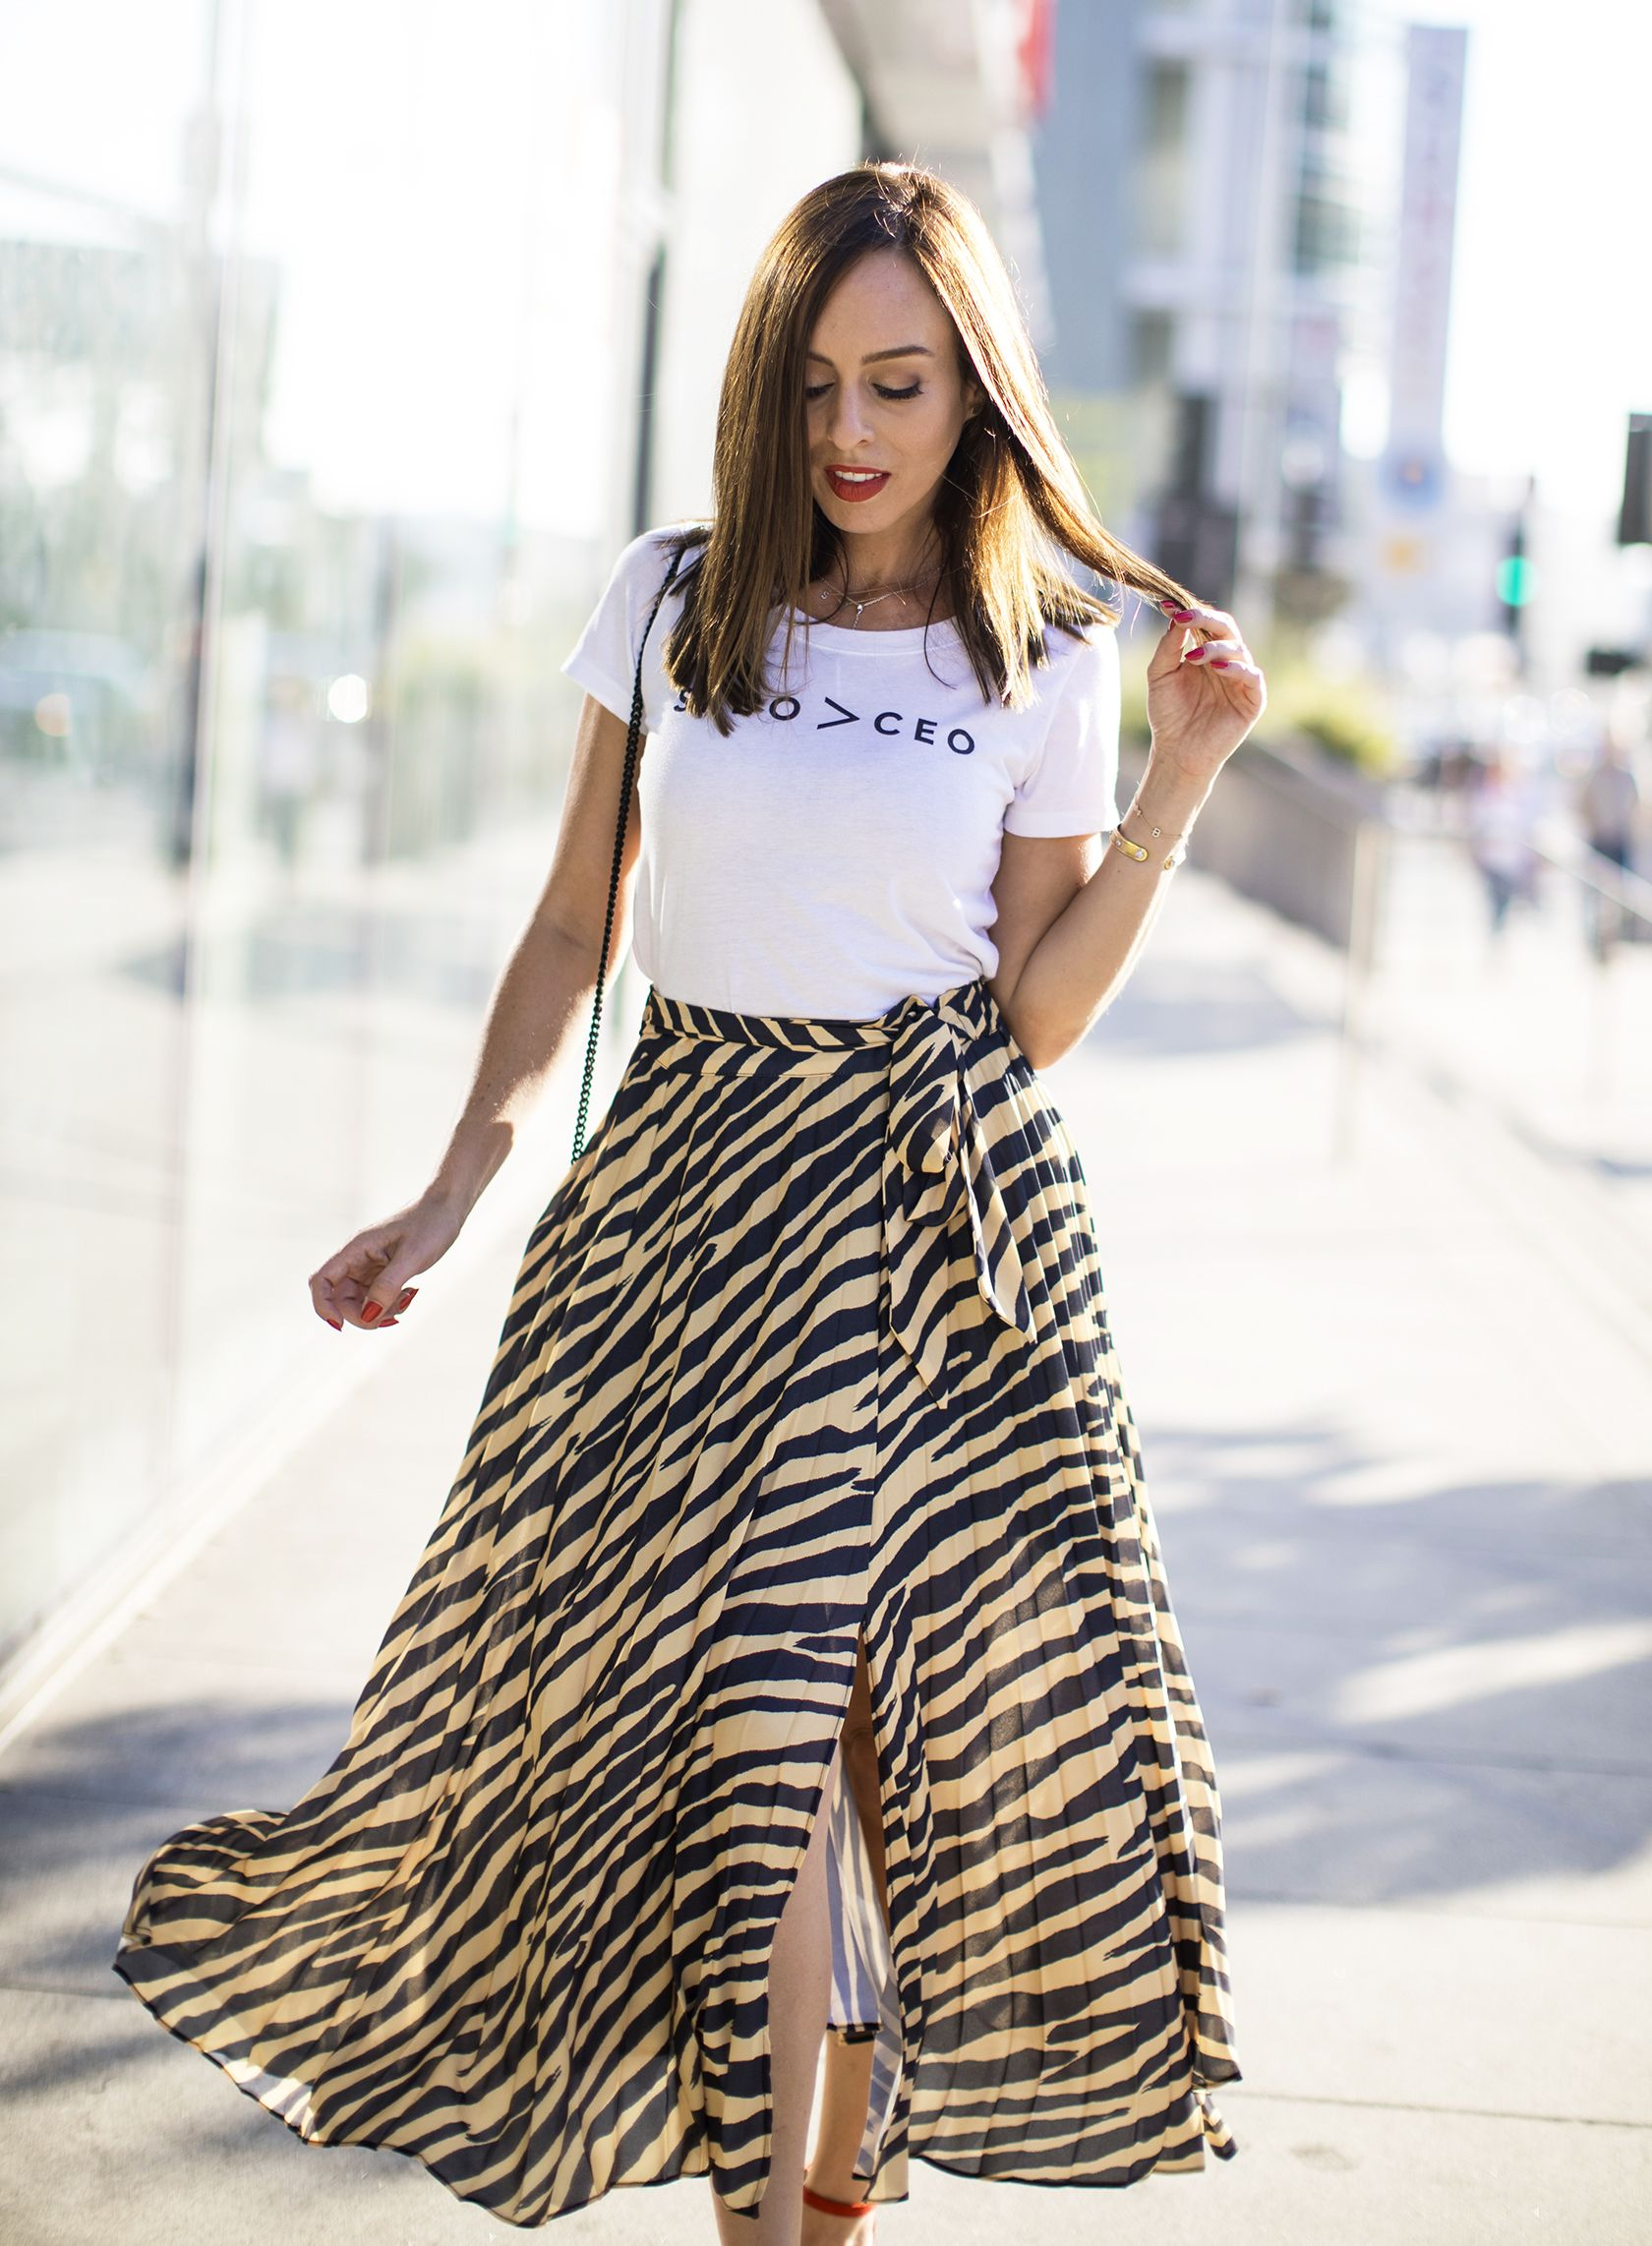 dea29daf7ad Sydne Style shows how to wear animal prints in topshop zebra skirt  zebra   skirts  tees  tshirt  graphictee